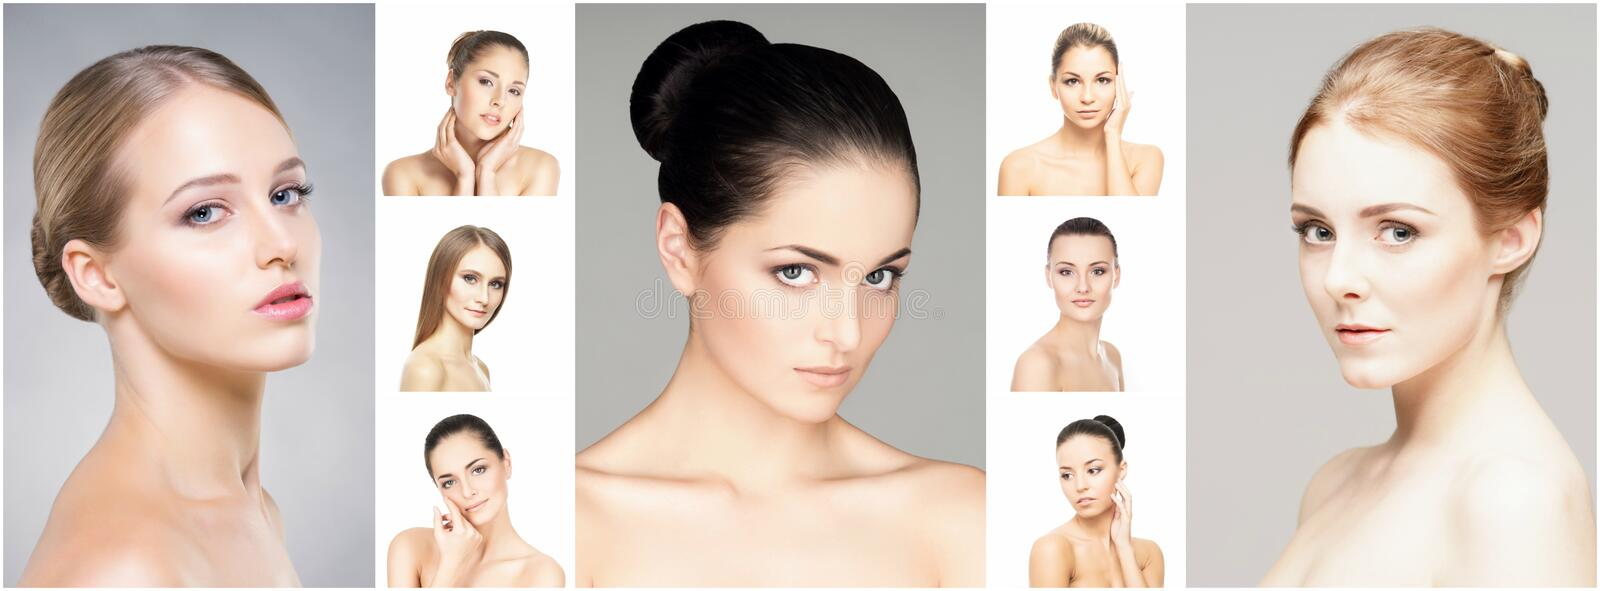 Beautiful, healthy and young female portraits collection royalty free stock photography